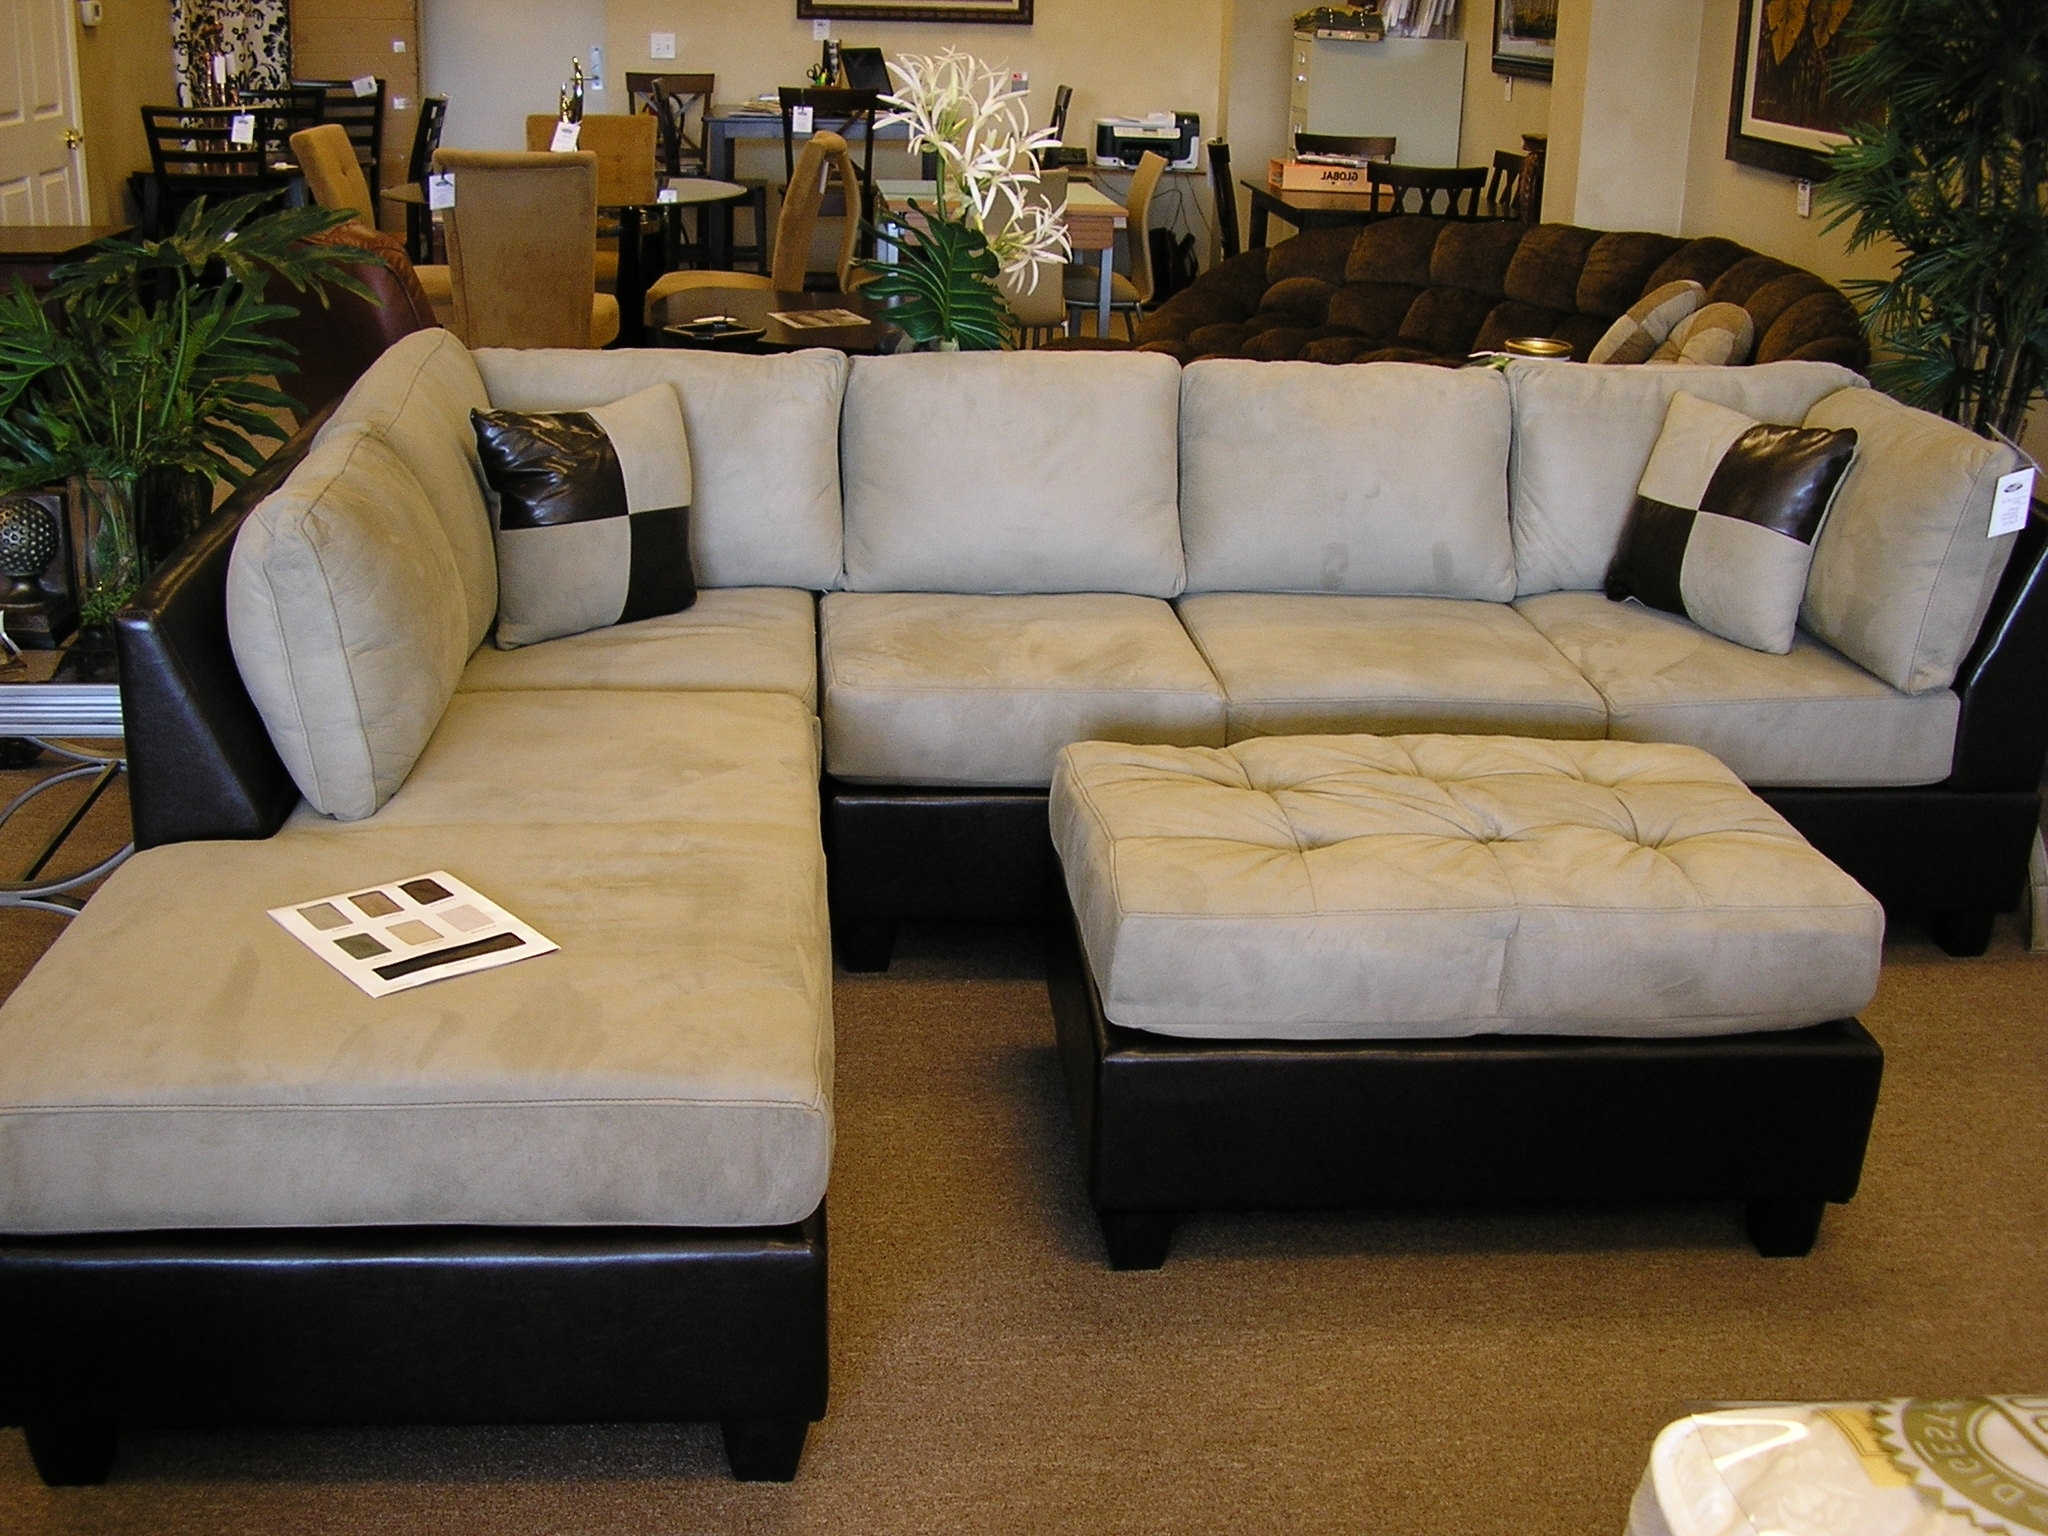 Famous Fabric Sectional Sofas With Chaise Throughout Extraordinary Fabric Sectional Sofas With Chaise 16 For Your (View 11 of 15)